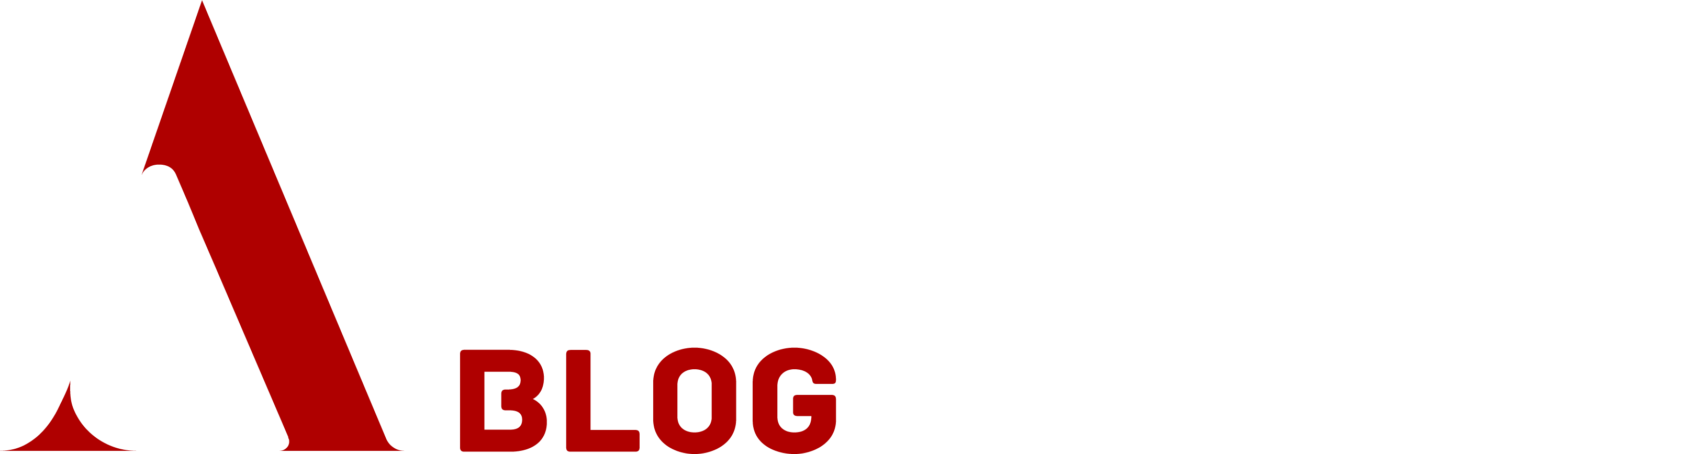 3+1 factors for wise online casino selection